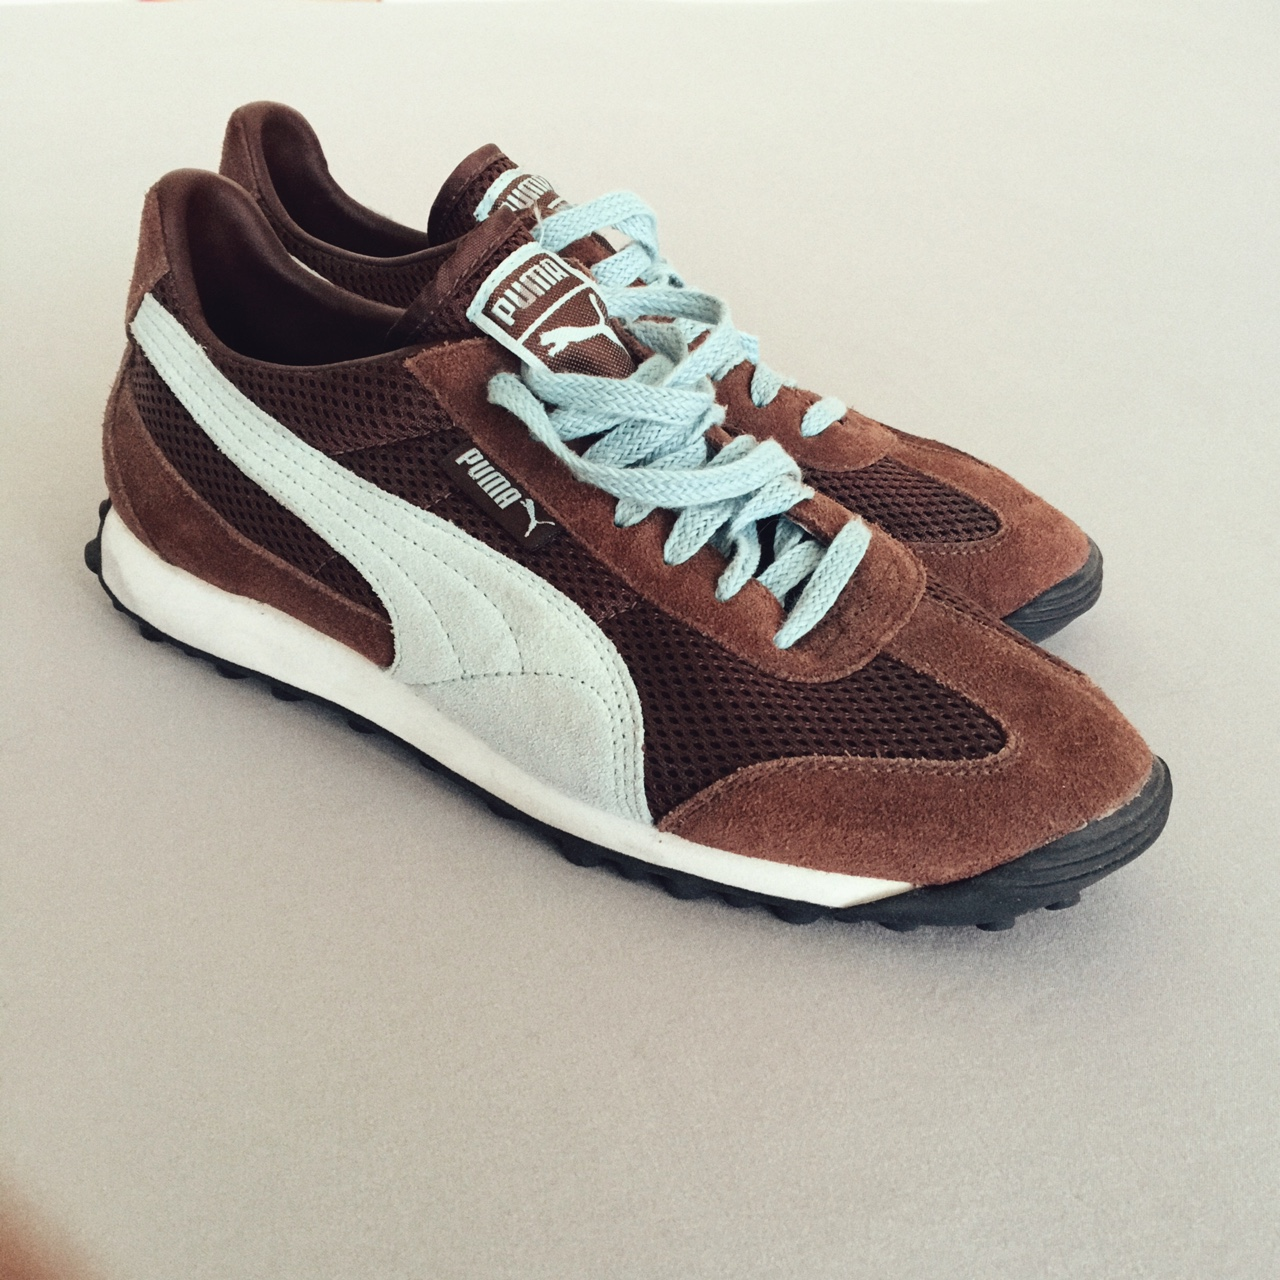 PUMA, Men's Easy Rider Classic Sneakers. Constructed ...